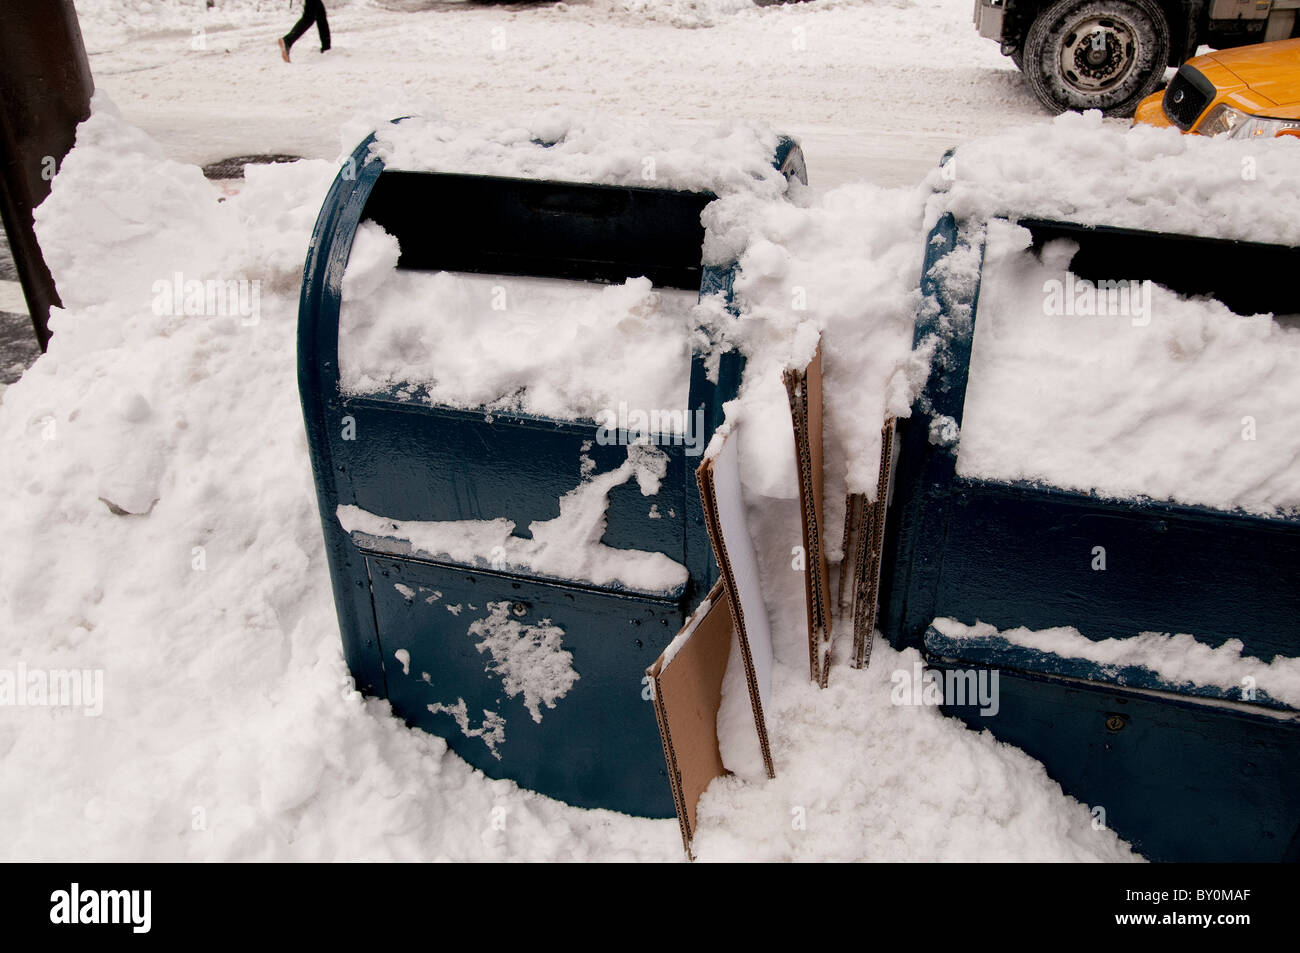 Snow Storm, December 26, 2010, United Staes Postal Service mail boxes, 5th Avenue - Stock Image